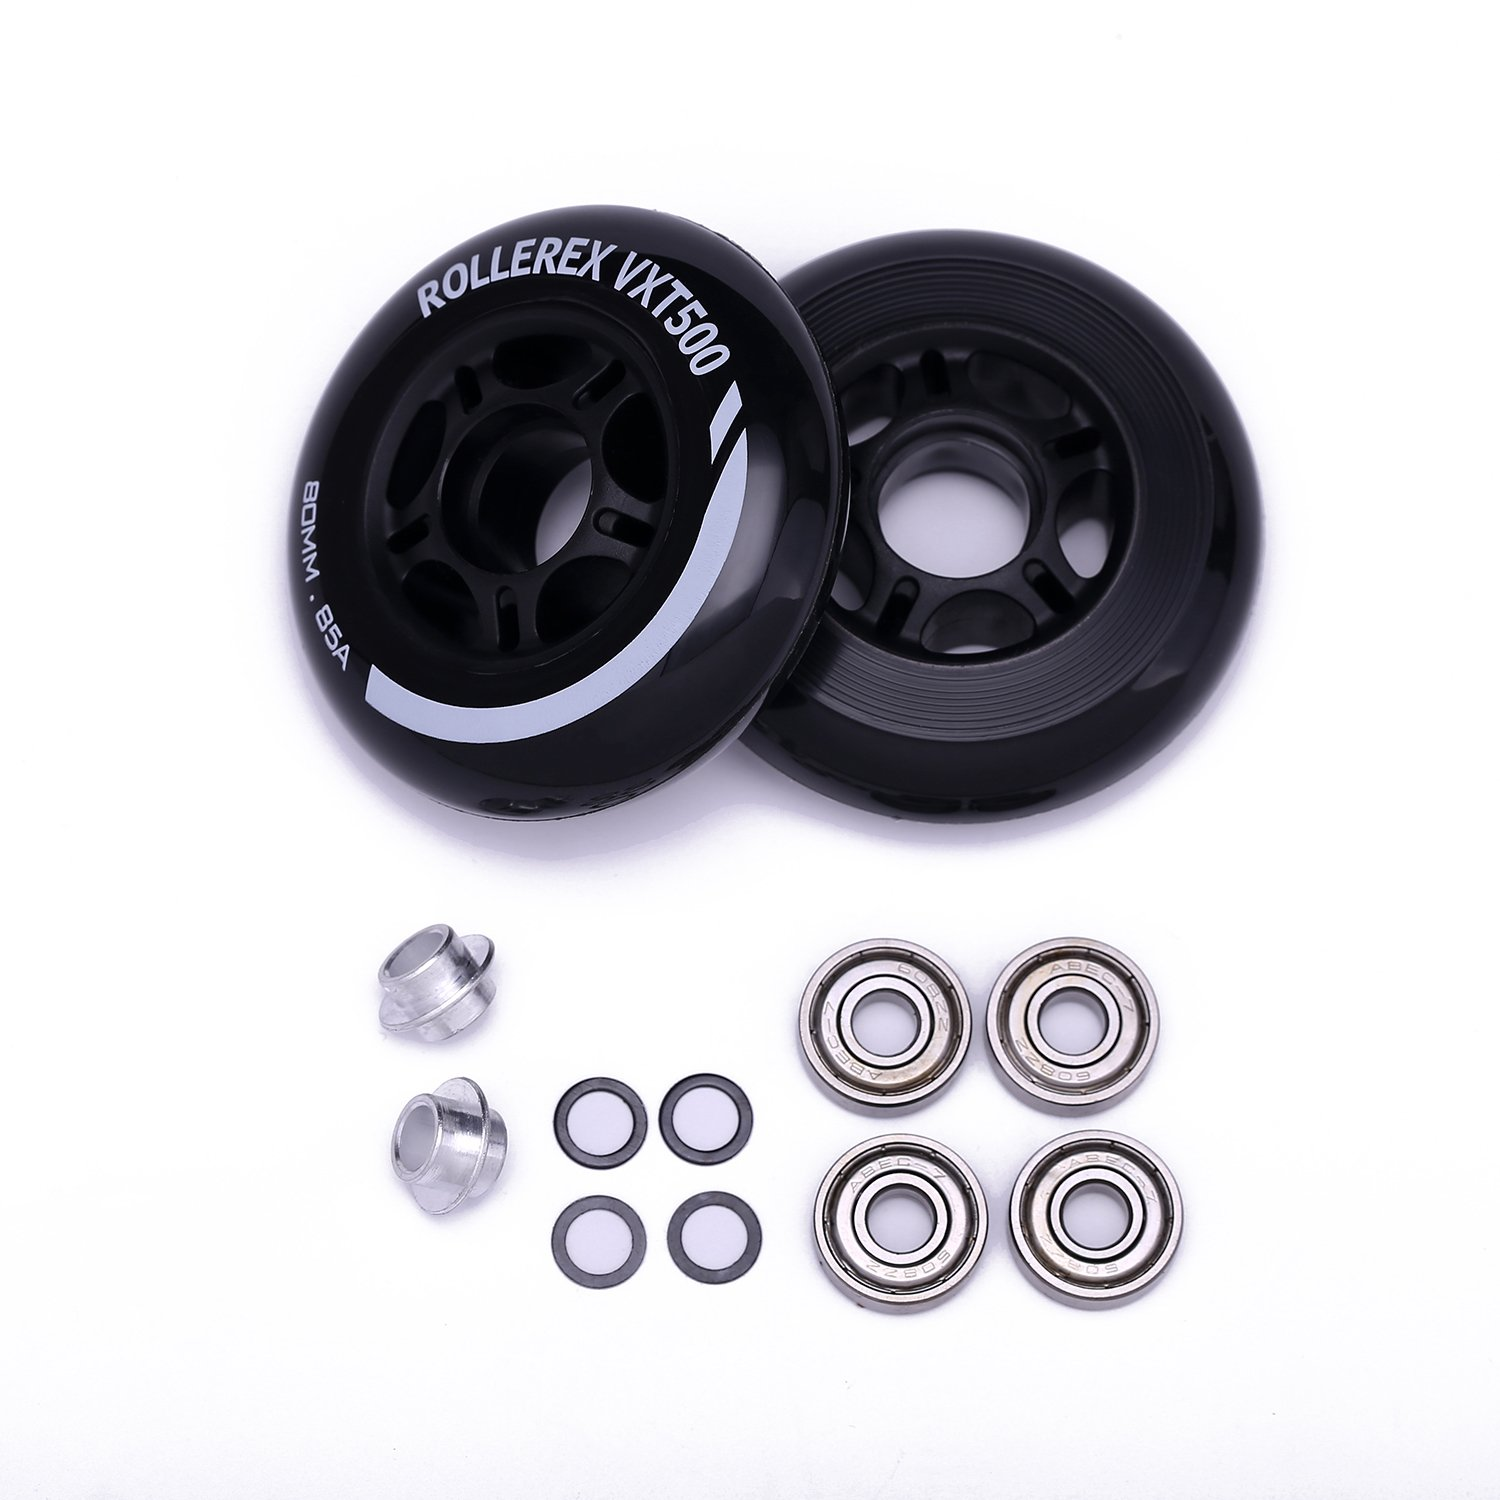 Rollerex VXT500 Inline Skate/Rollerblade Wheels (2-Pack w/Bearings, spacers and washers)